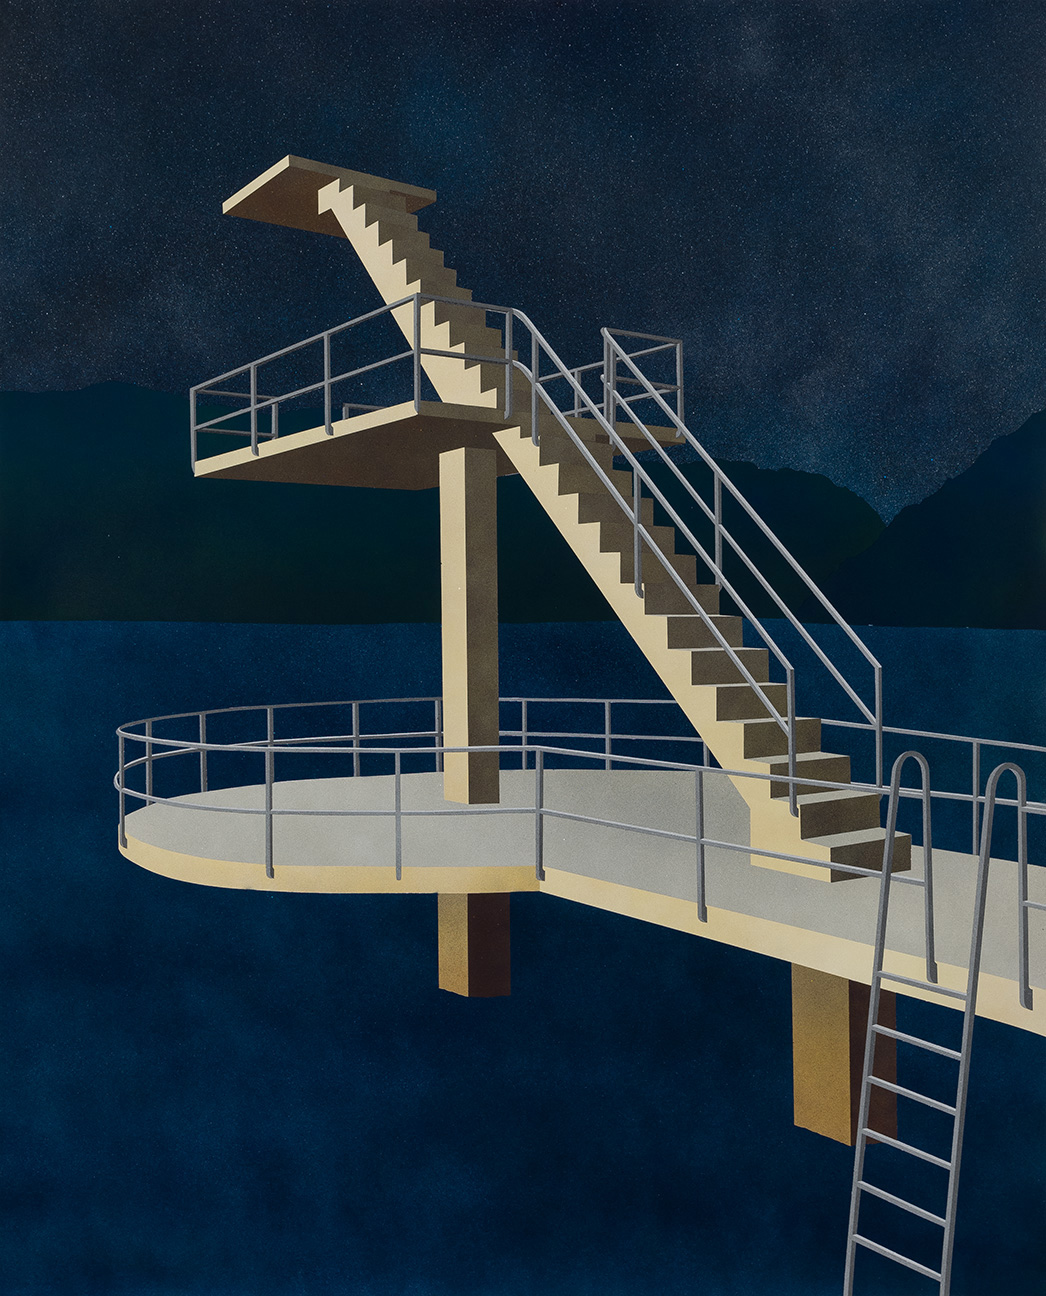 Diving Tower, 2015. Acrylic on paper 40 x 32 inches